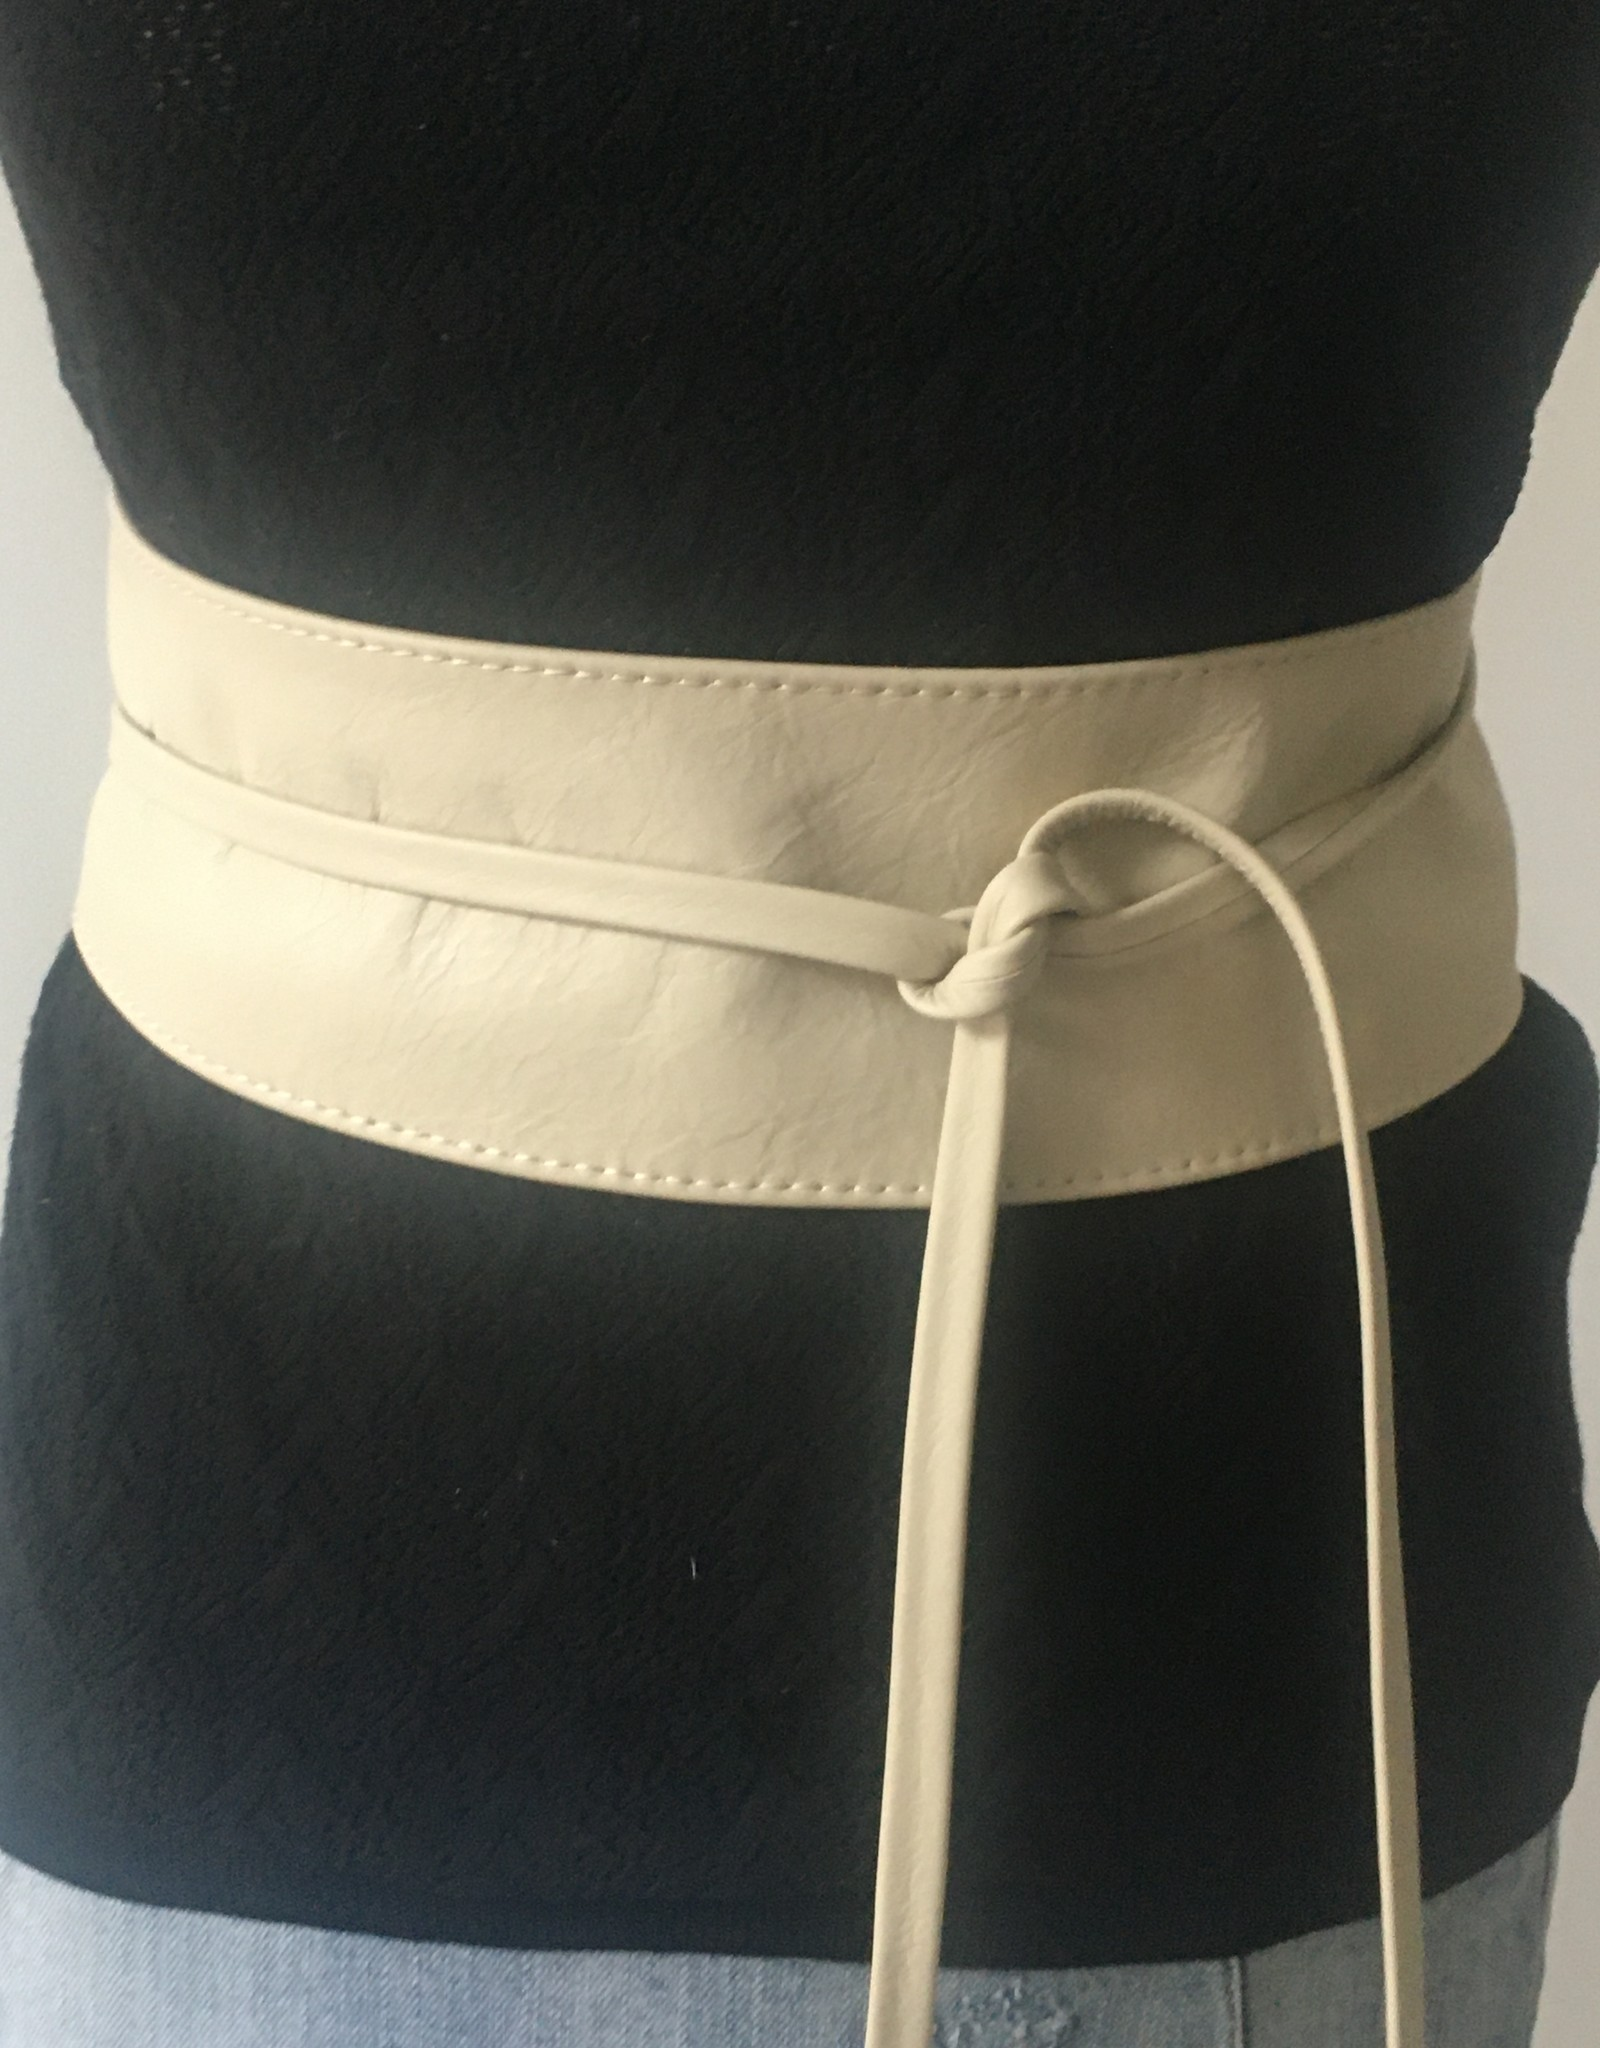 Wide leather belt, several colors